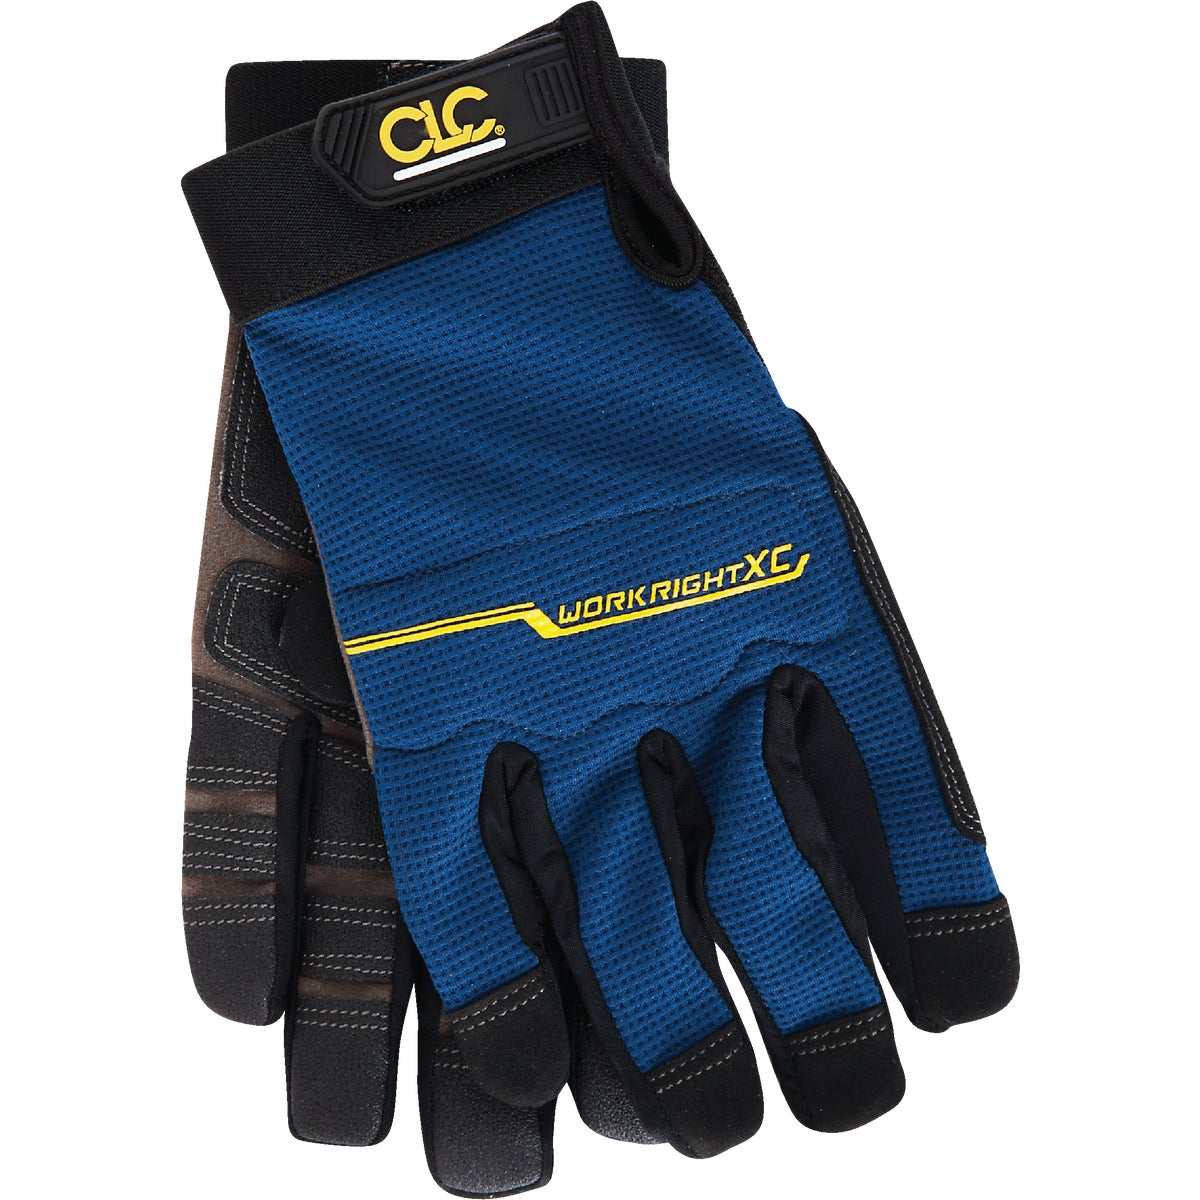 XL WORKRIGHT XC GLOVE